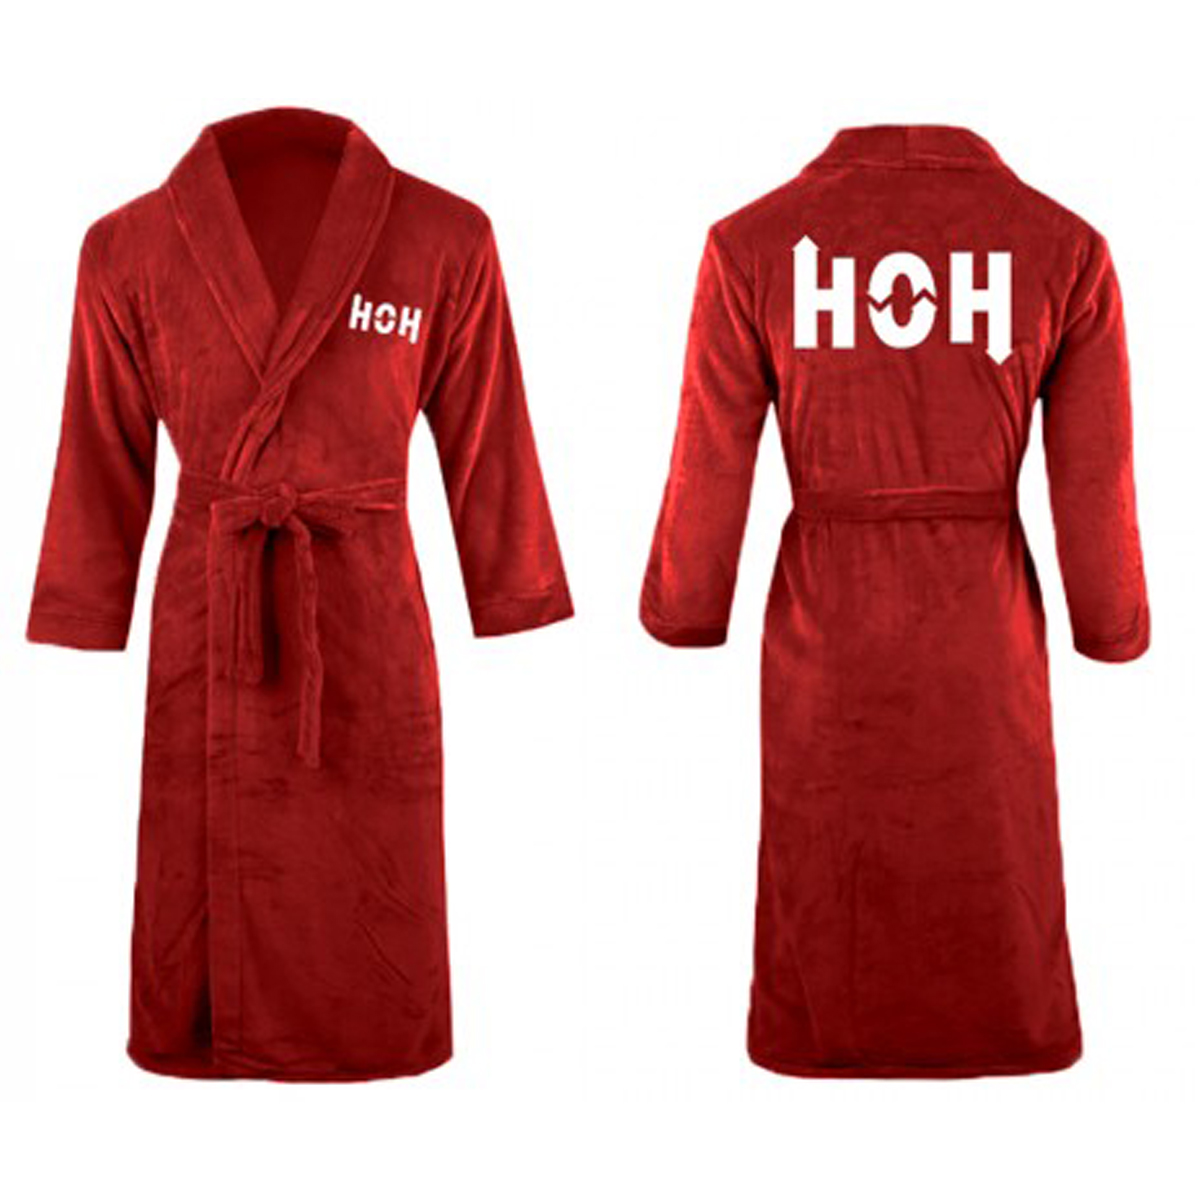 Big Brother HOH Luxury Robe (Red)